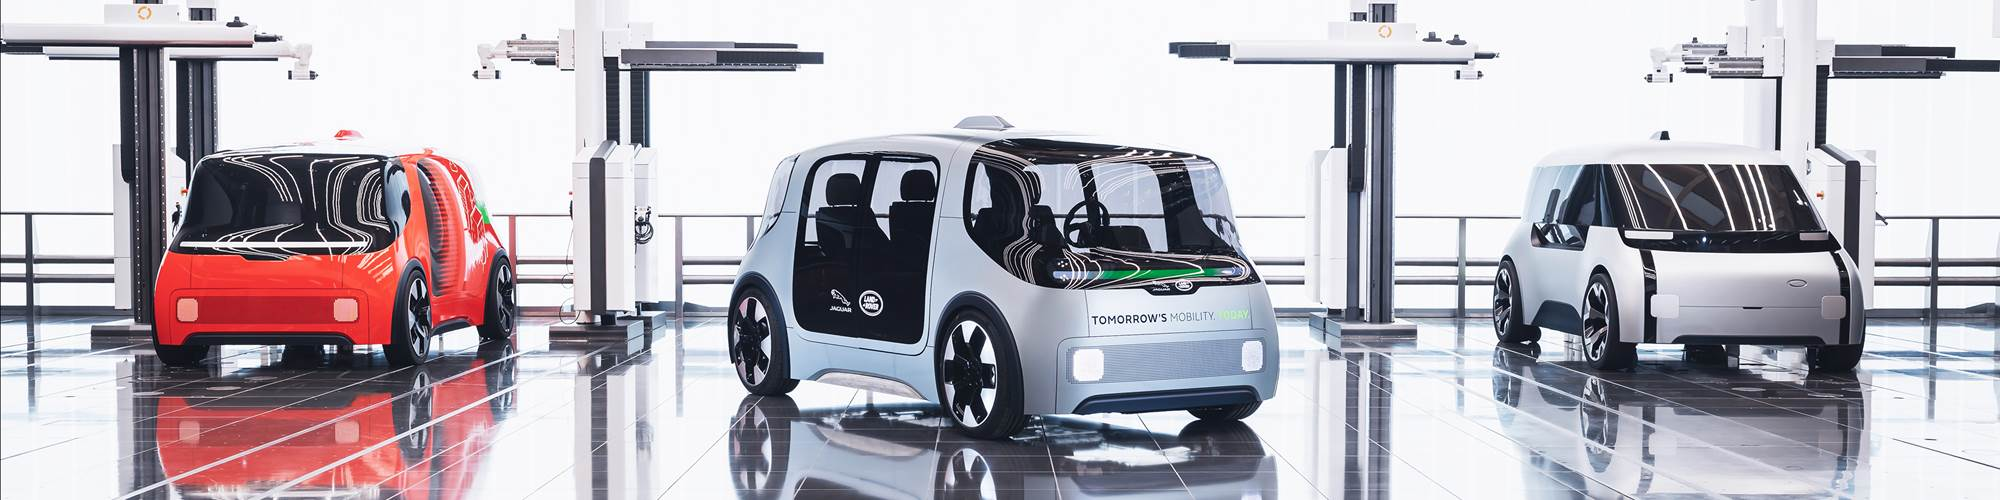 Jaguar Land Rover autonomous shuttle concept vehicles